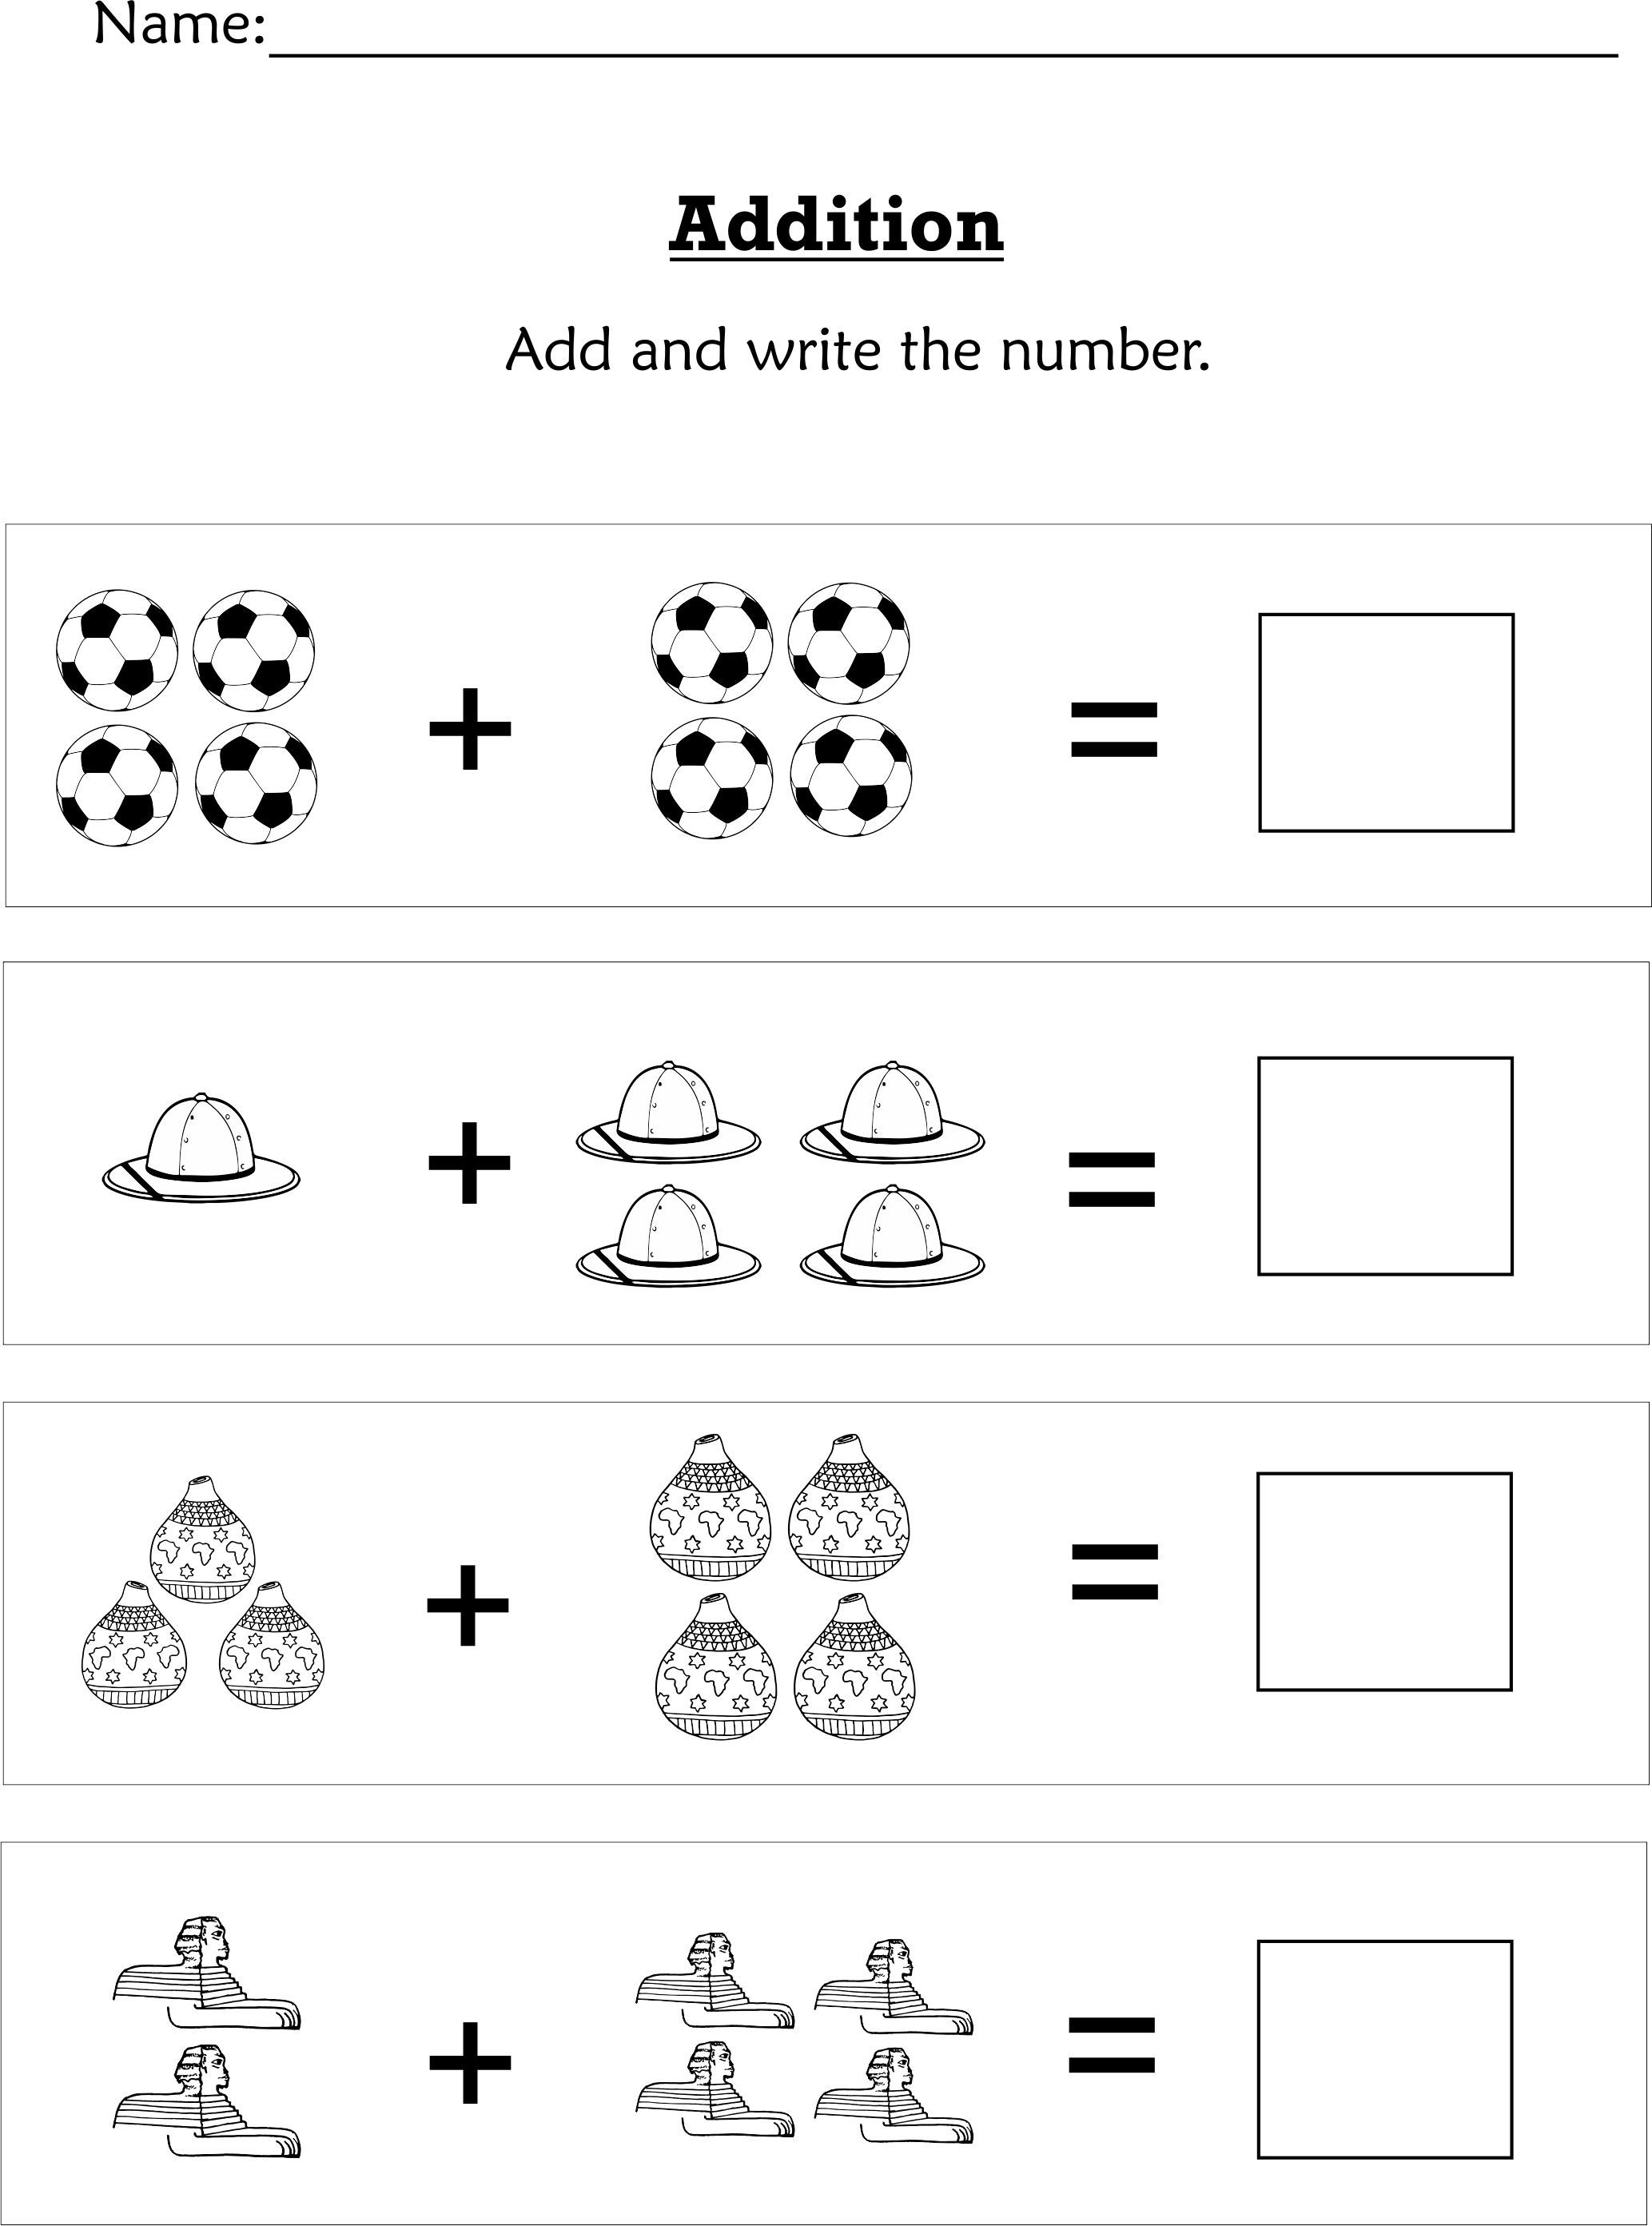 Simple Addition For Preschoolers Or Early Kindergartners